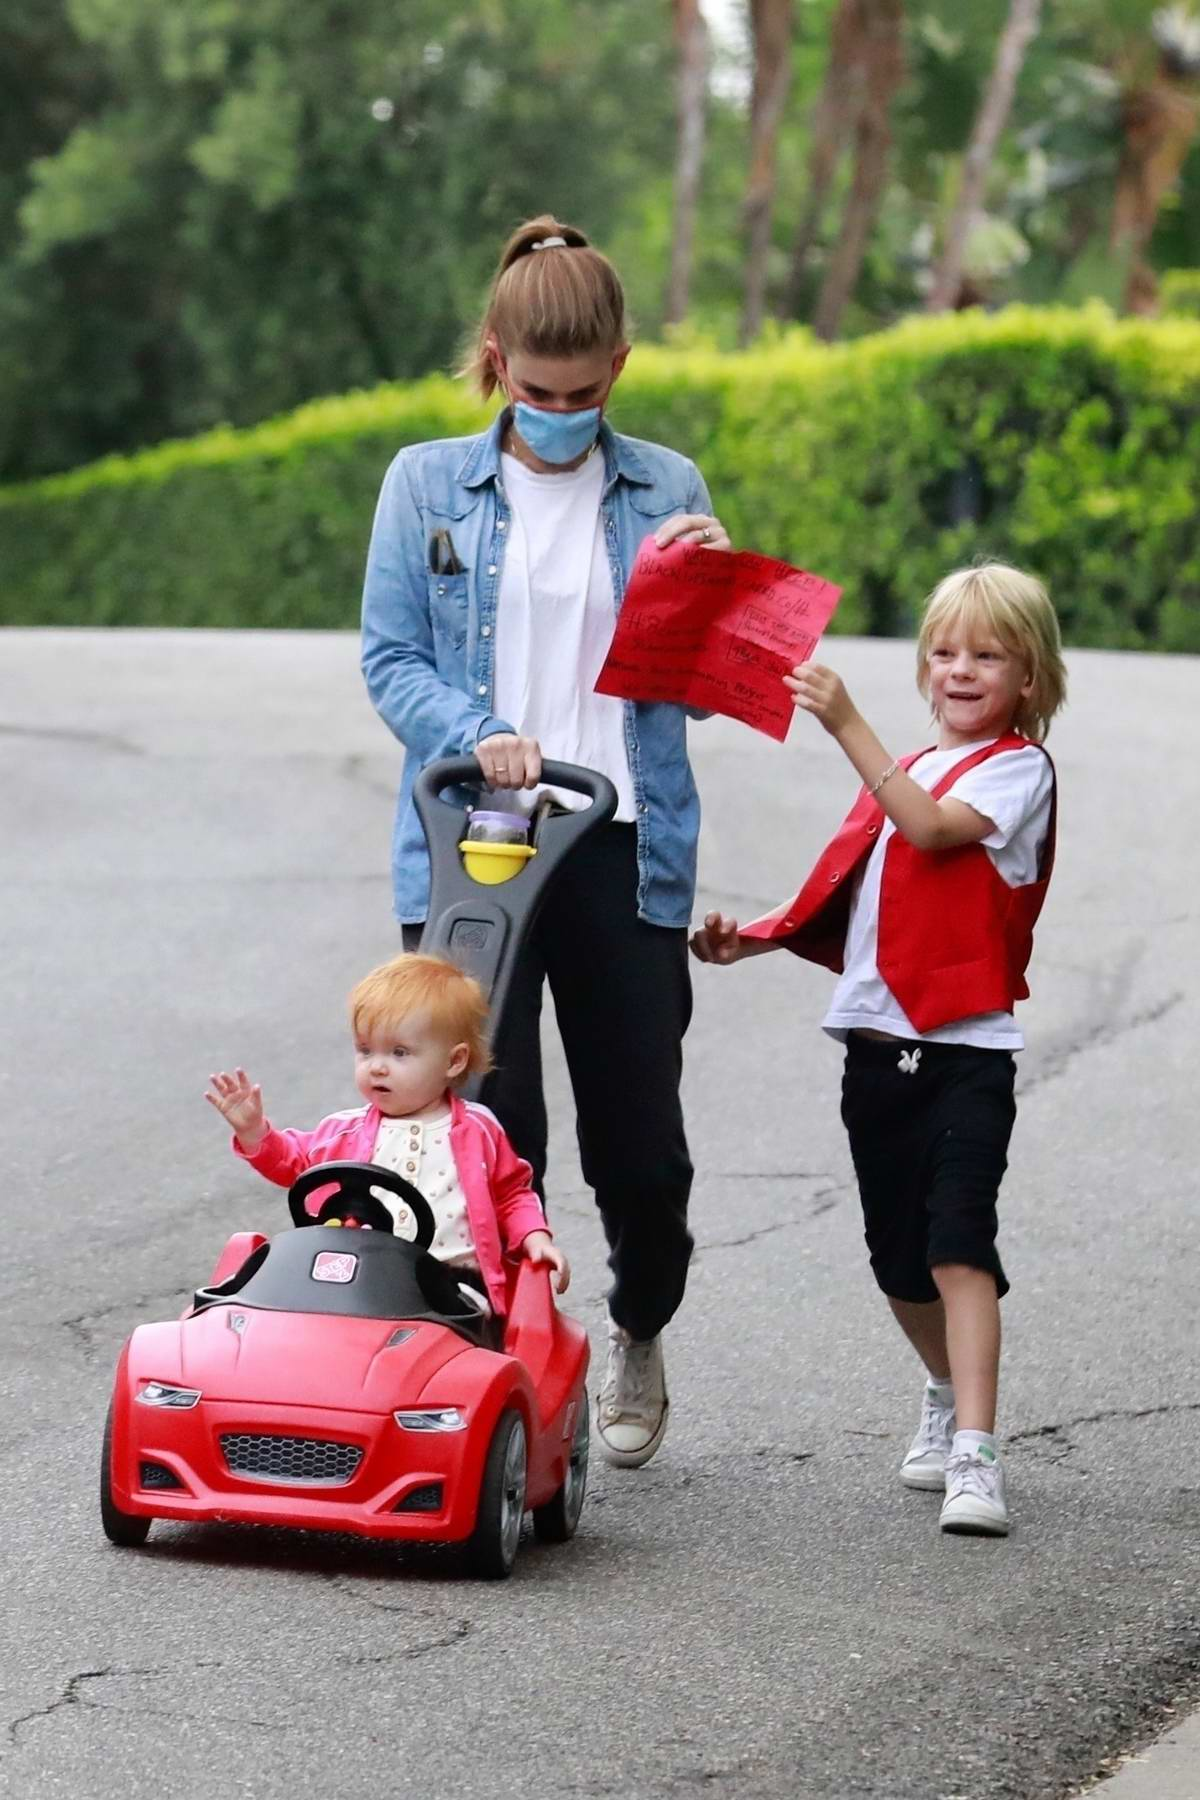 Kate Mara goes on her routine walk with her daughter and stepson in Los Feliz, California